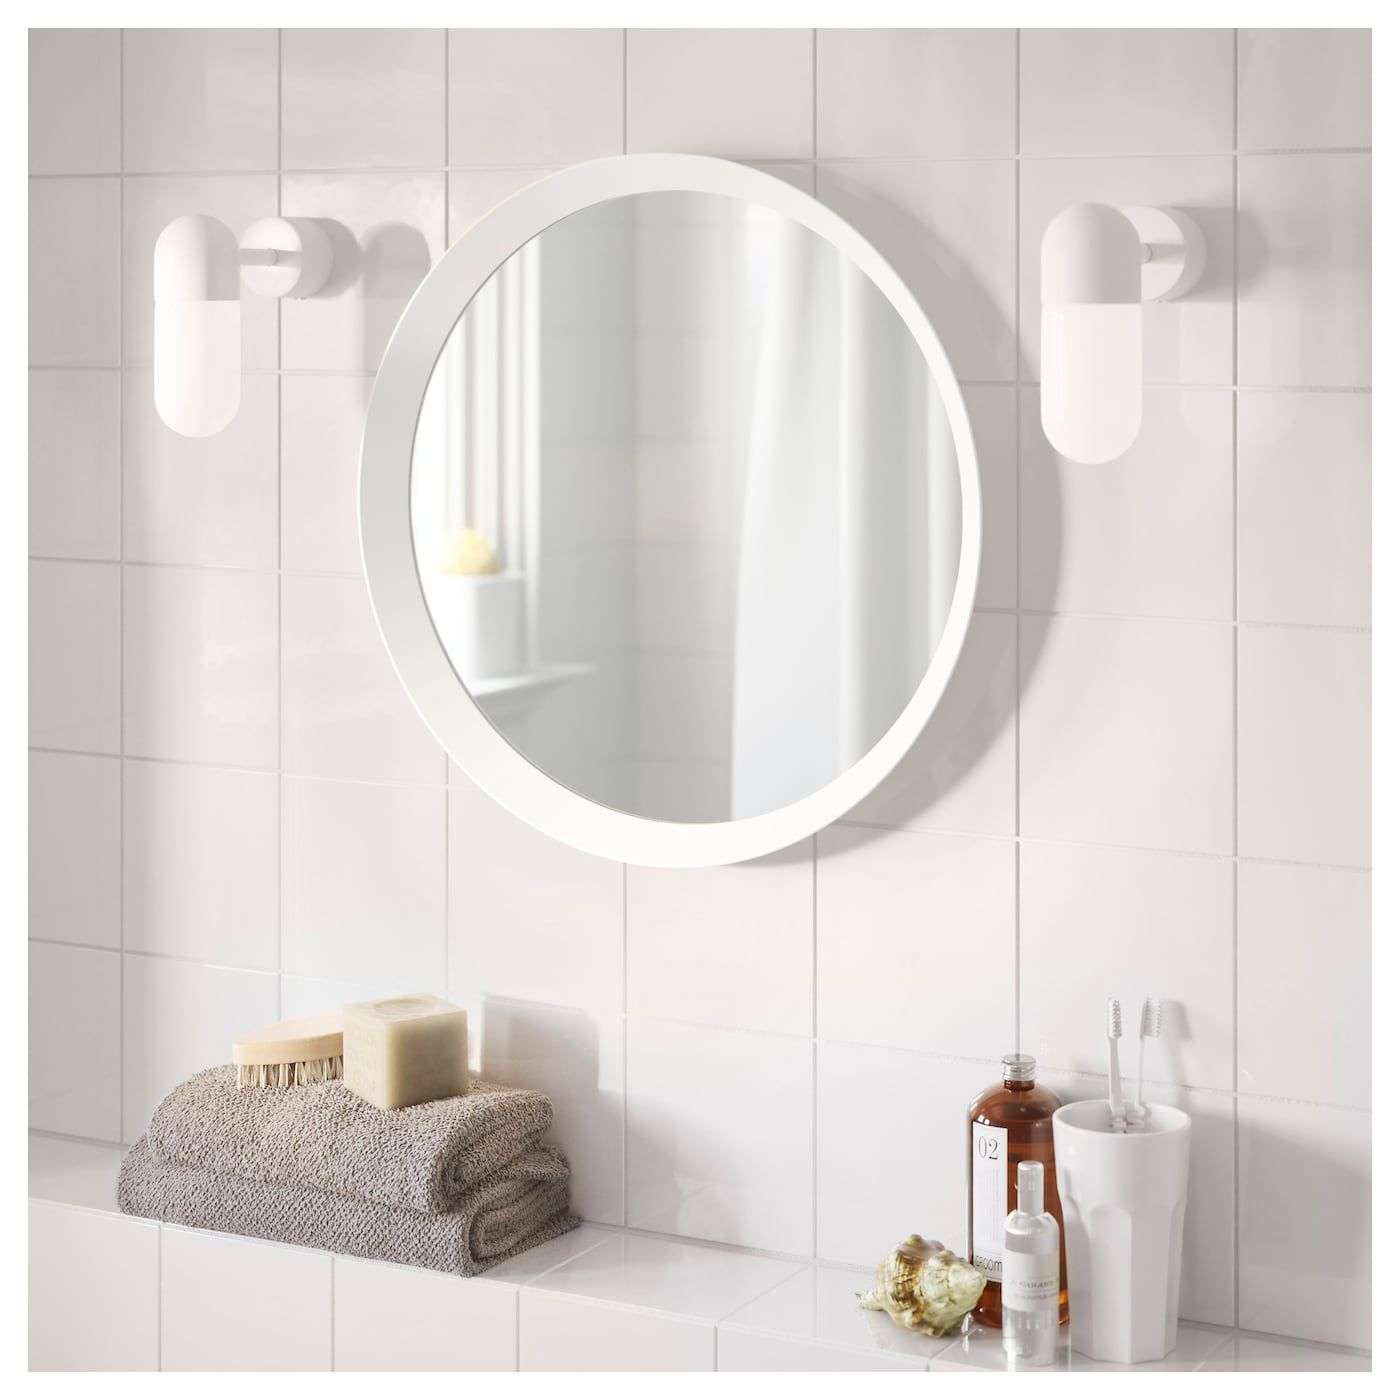 Langesund Mirror White Ikea Round Mirror Bathroom Bathroom